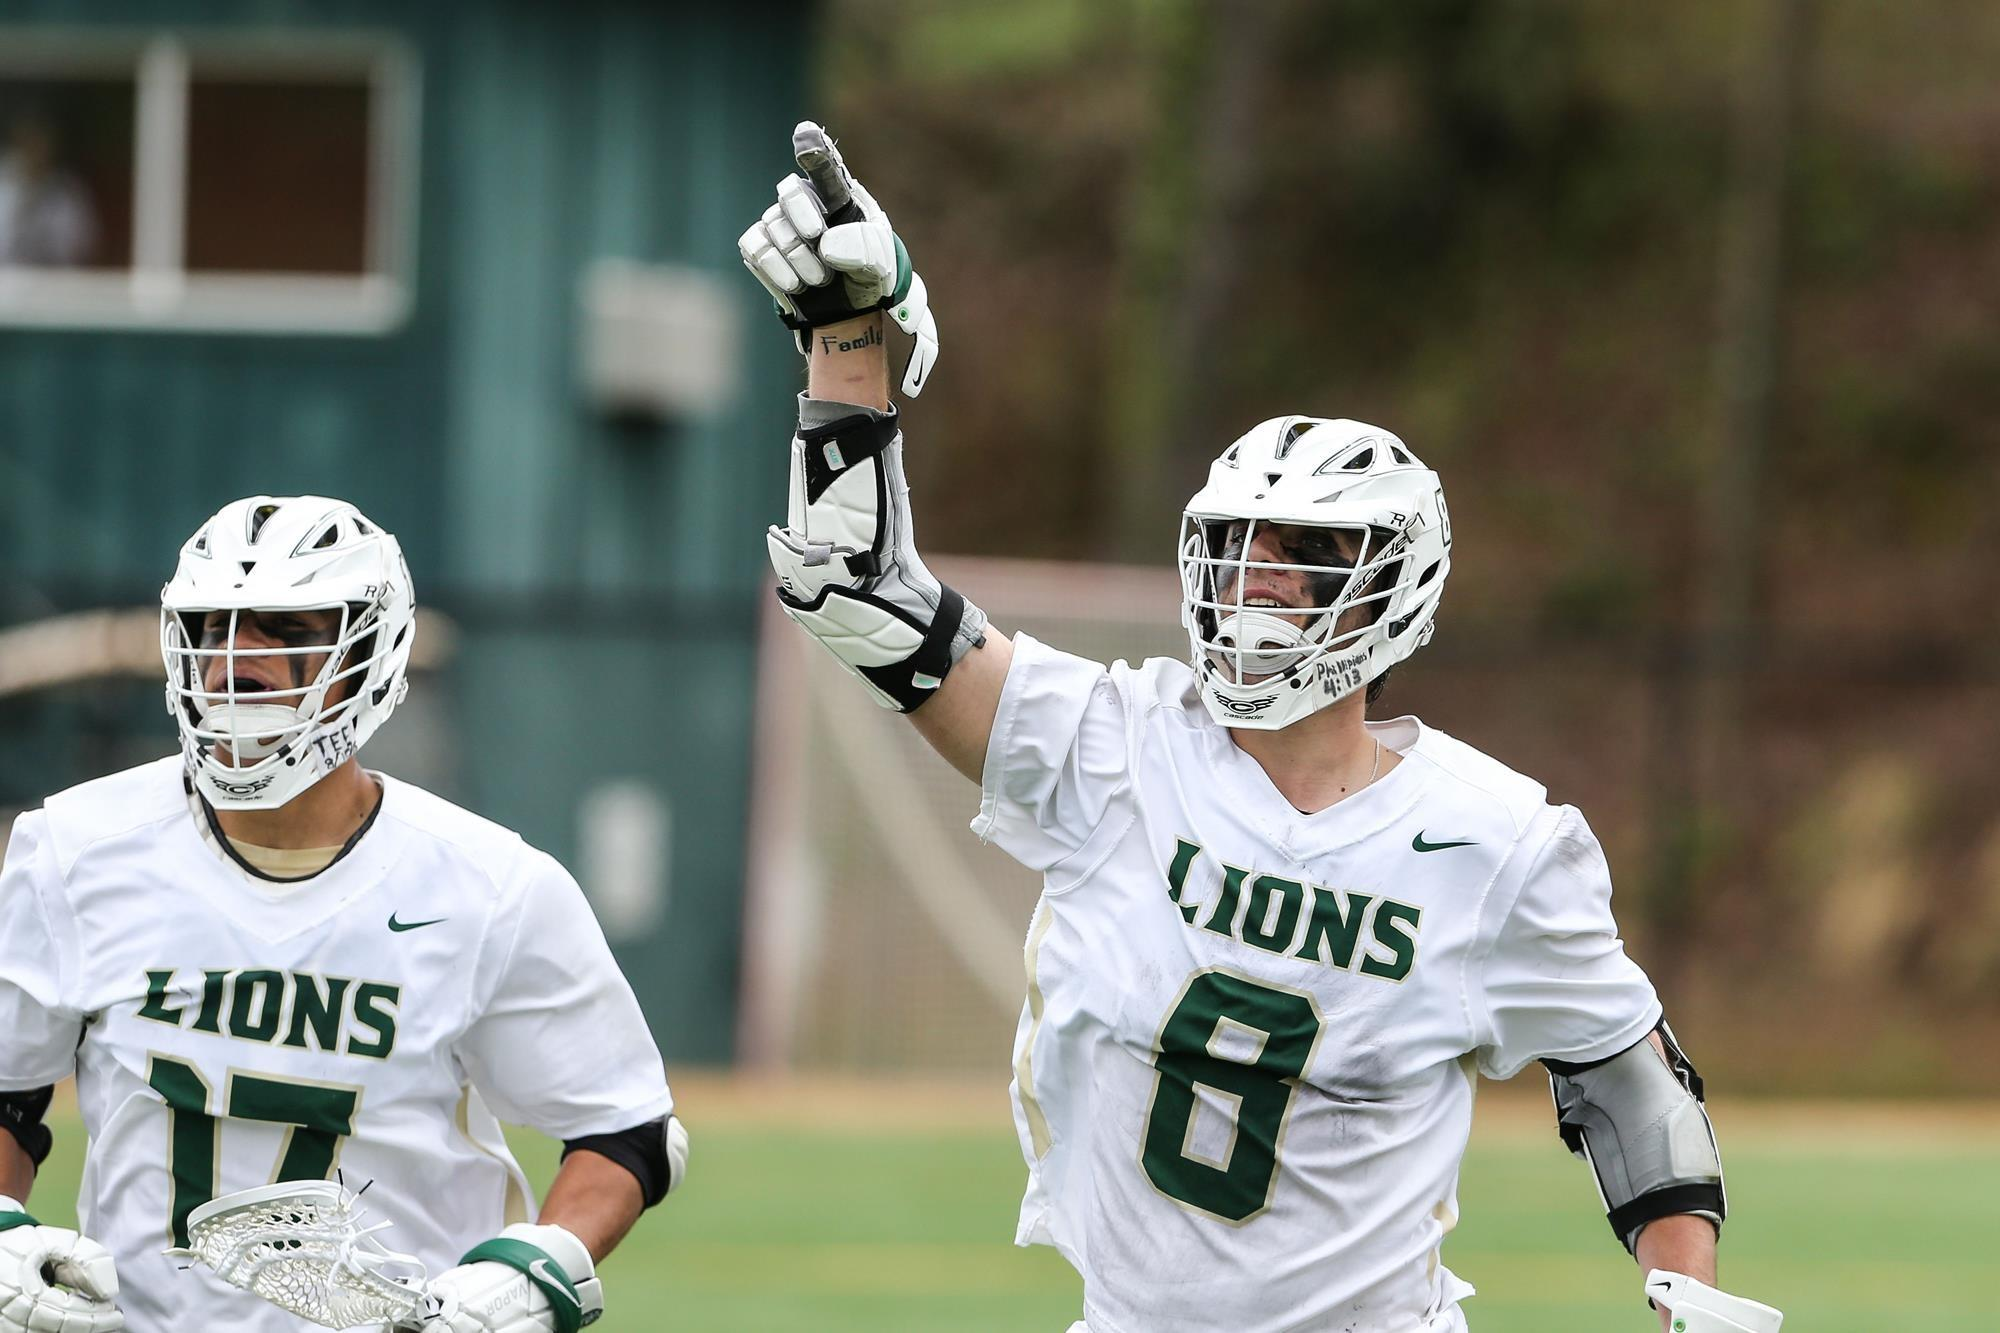 MEN'S LACROSSE FINISHES SECOND IN USA SOUTH